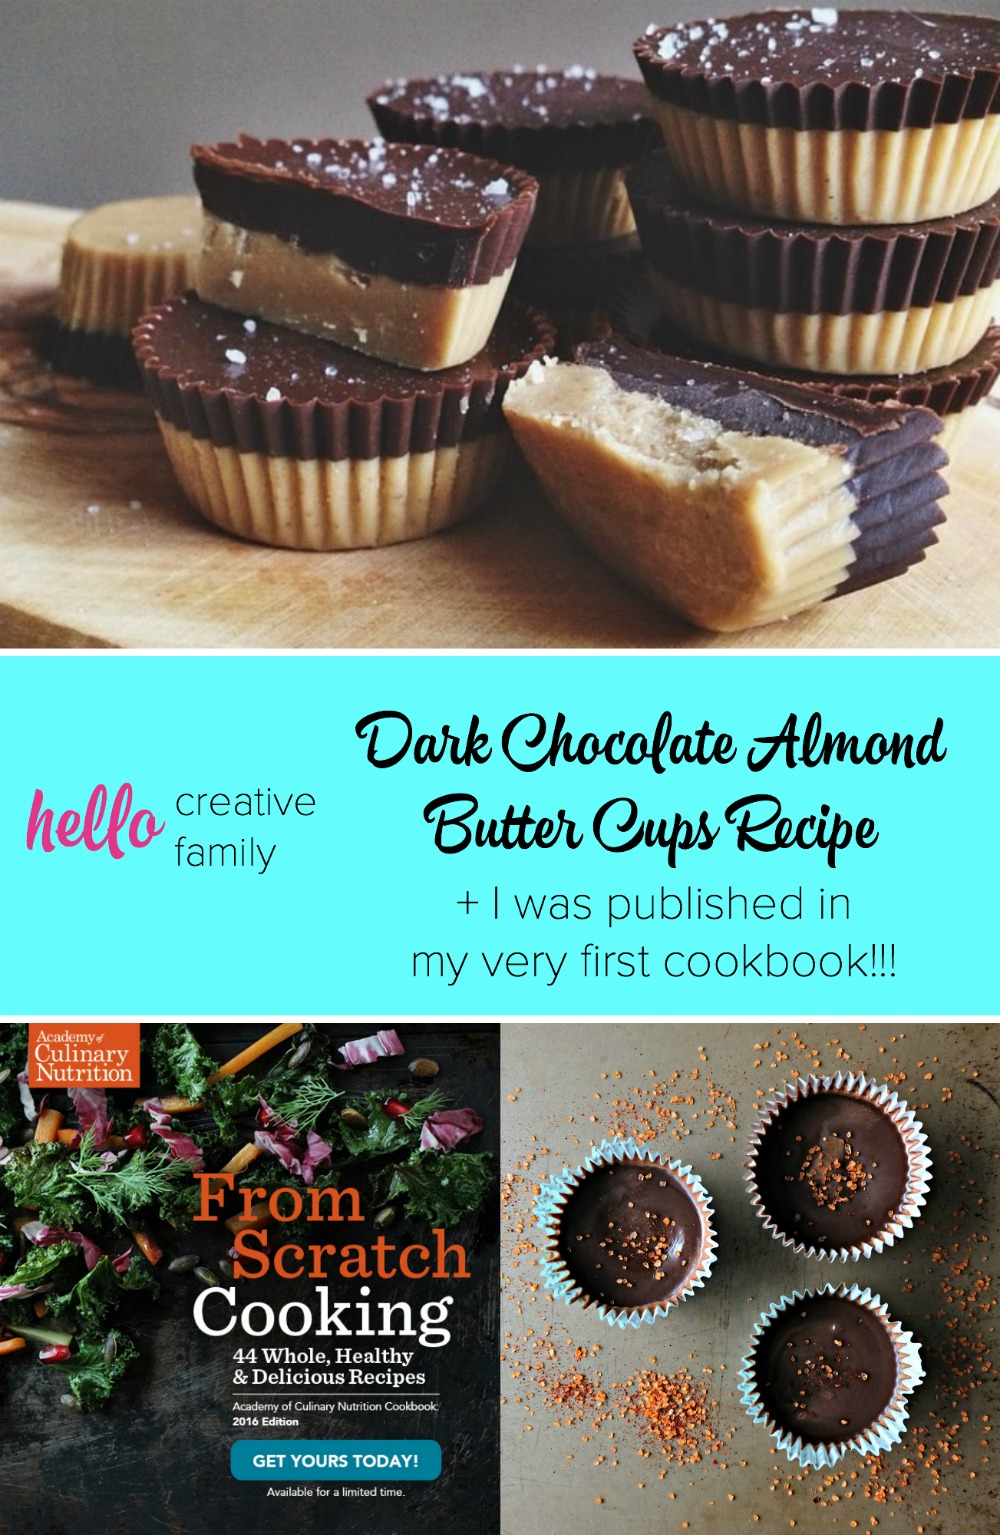 Every kitchen needs a delicious chocolate dessert recipe! This one is making me drool! Gluten free, dairy free and paleo friendly, this whole foods, healthy dessert idea is sure to be a hit! Dark chocolate almond butter cups recipe. PS. You could sub sunbutter or peanut butter!